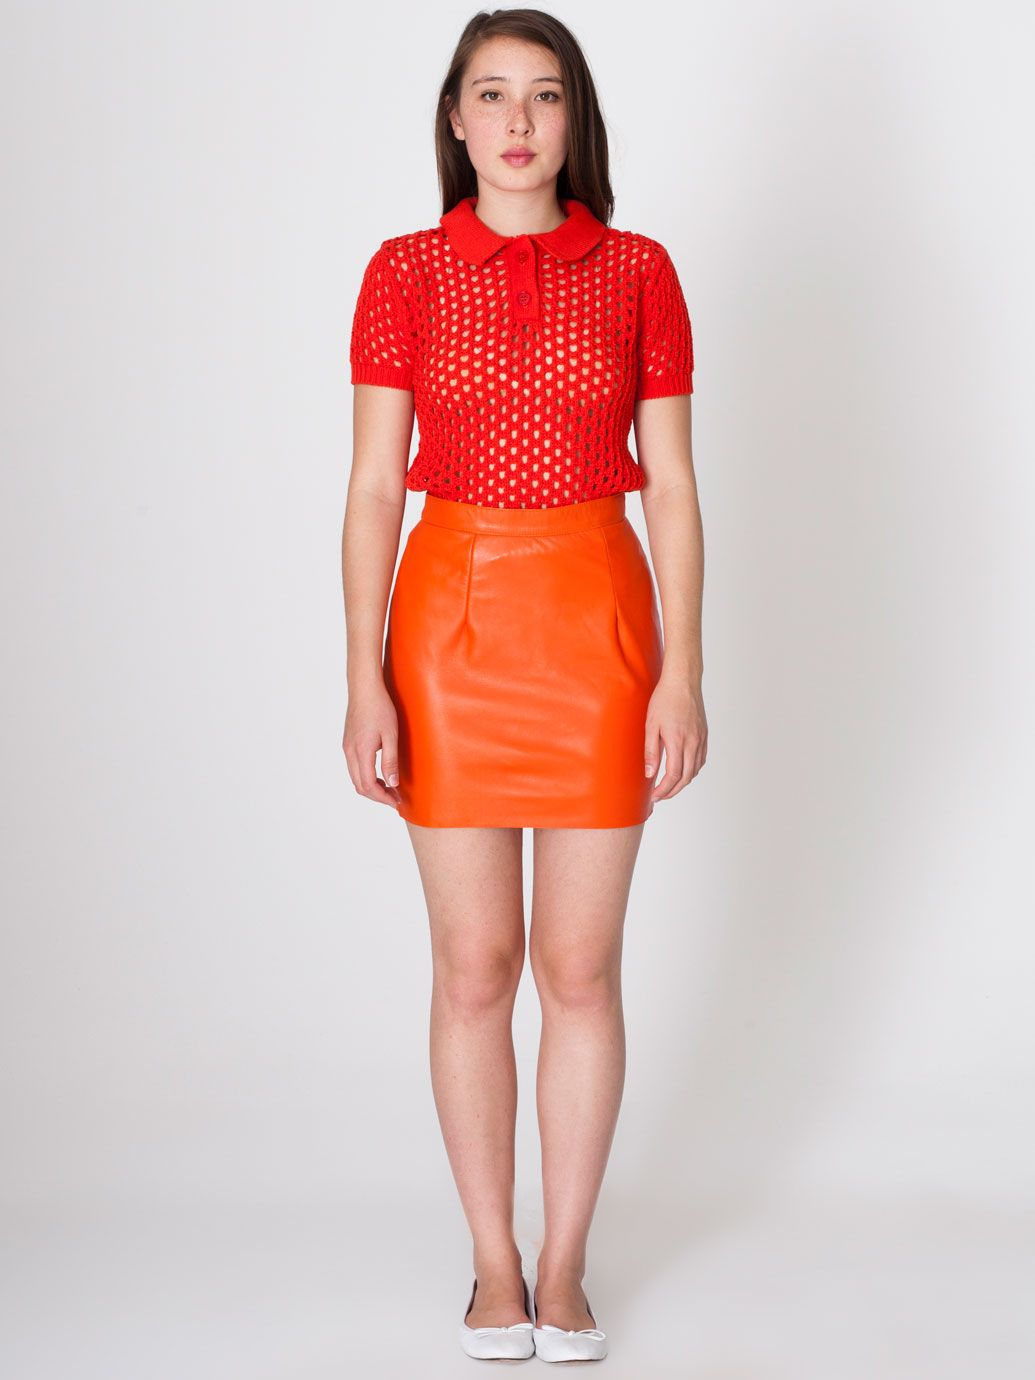 Red Open Knit Tennis Shirt Orange Vinyl Mini Skirt